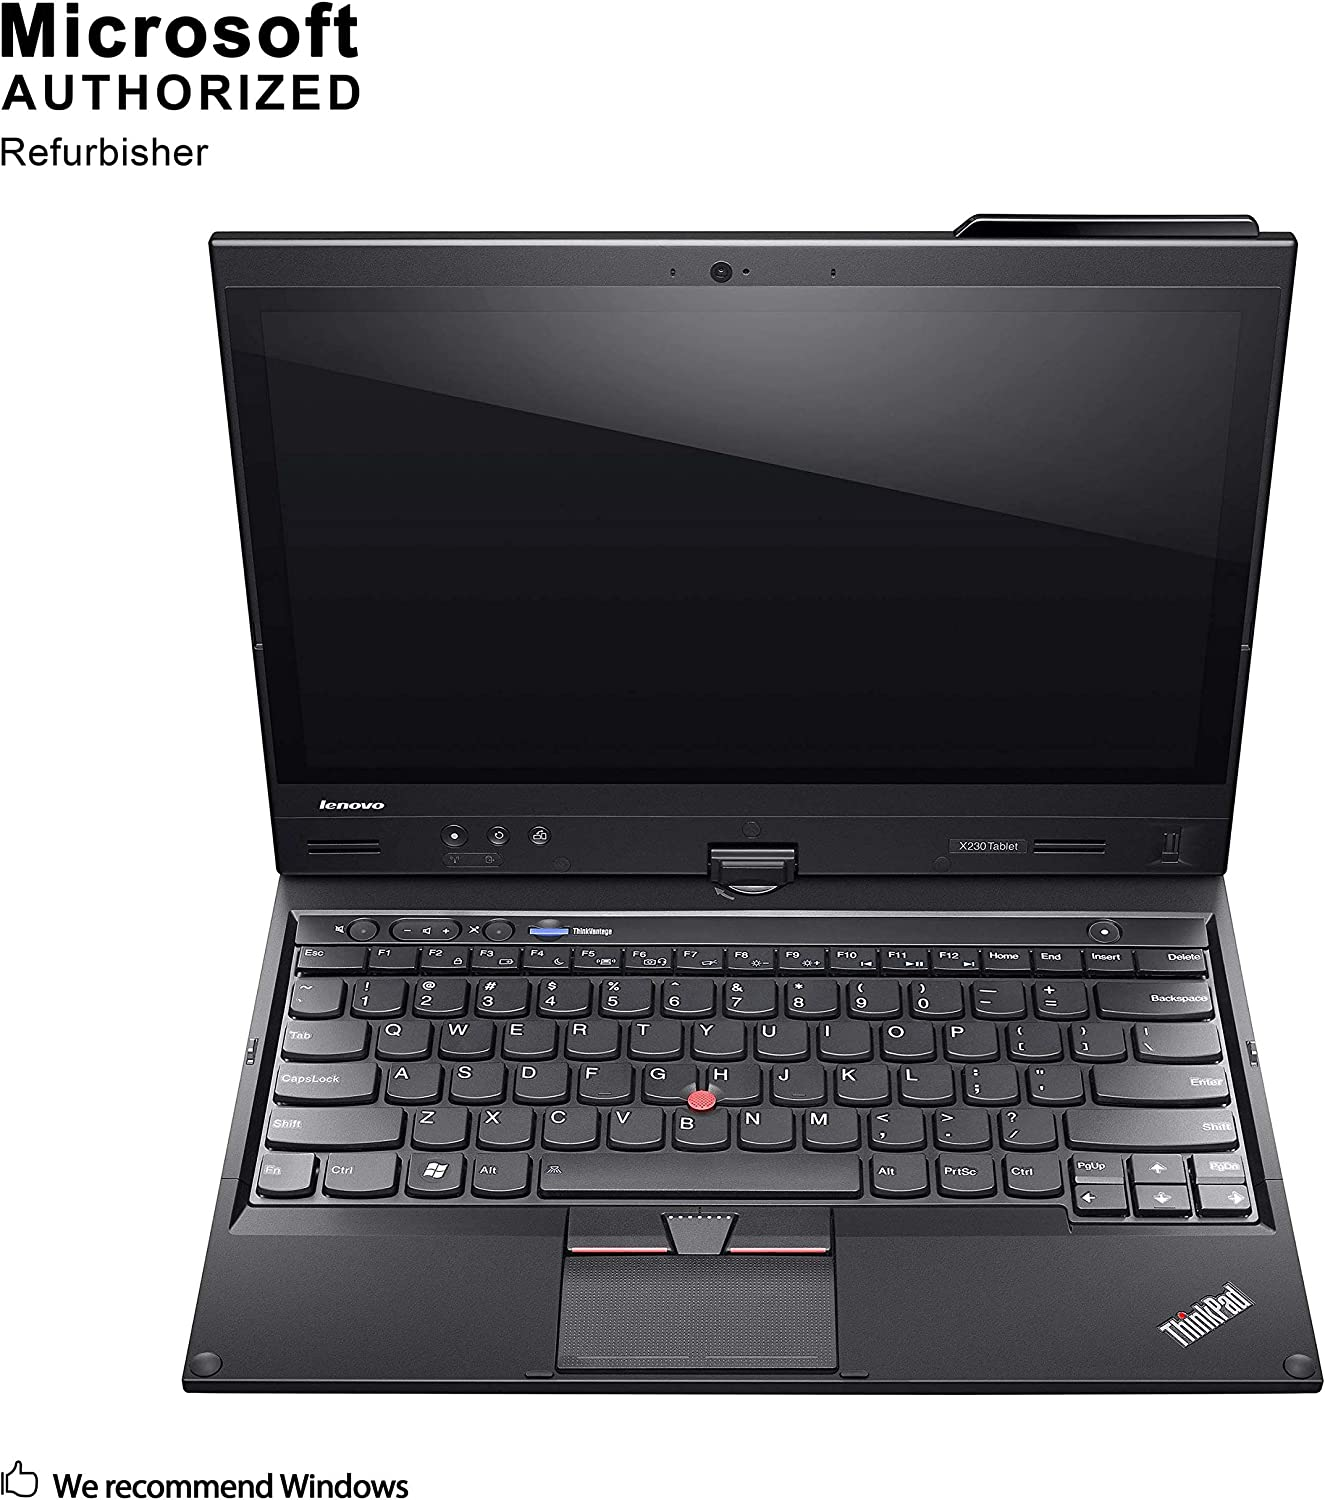 Lenovo ThinkPad X230t 12.5 Inch Convertible Laptop, Intel Core i5 3320M up to 3.3GHz, 8G DDR3, 512G SSD, WiFi, VGA, mDP, Windows 10 64 Bit Multi-Language Supports English/French/Spanish(Renewed)